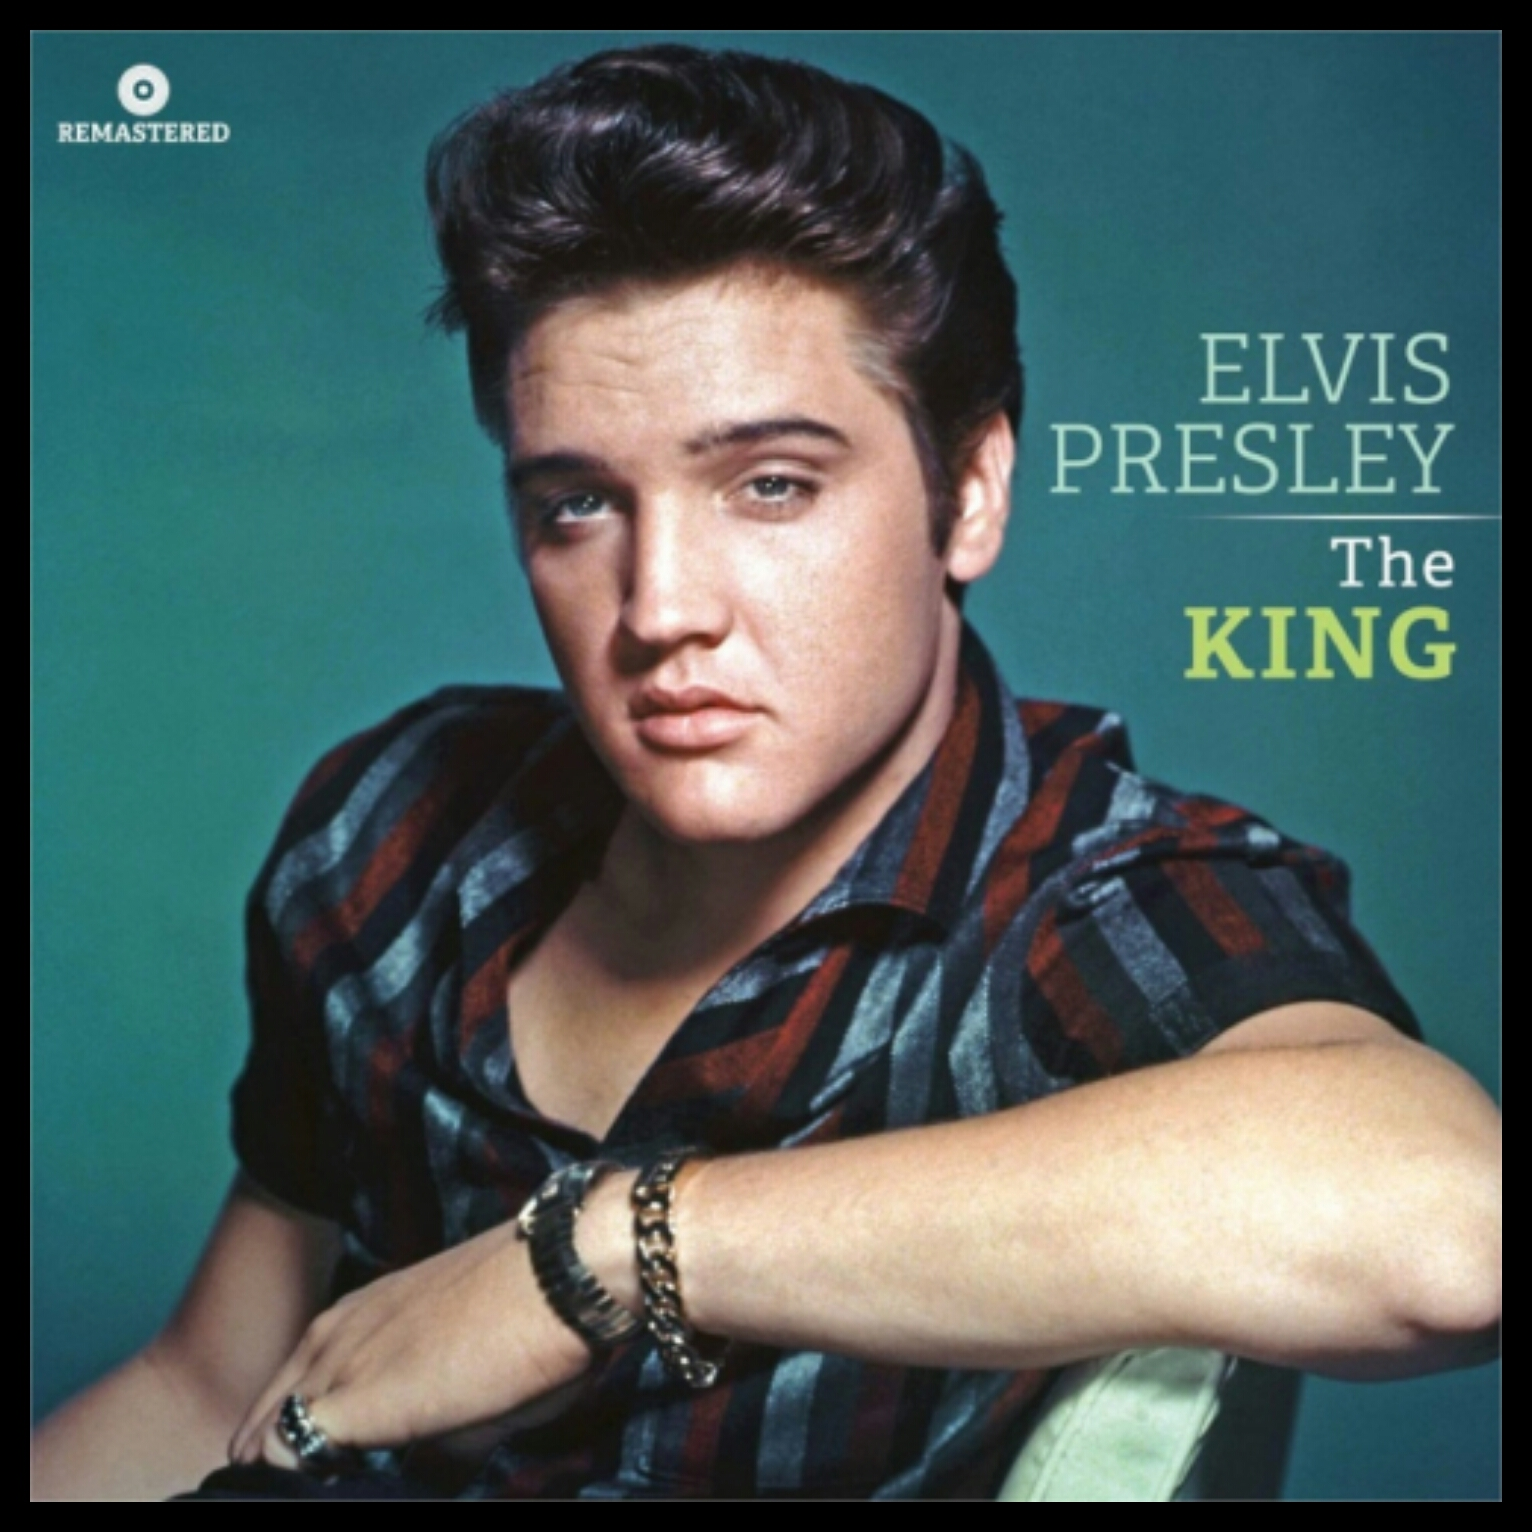 ELVIS PRESLEY - THE KING Img_2020-08-14_18-32-1fkmn